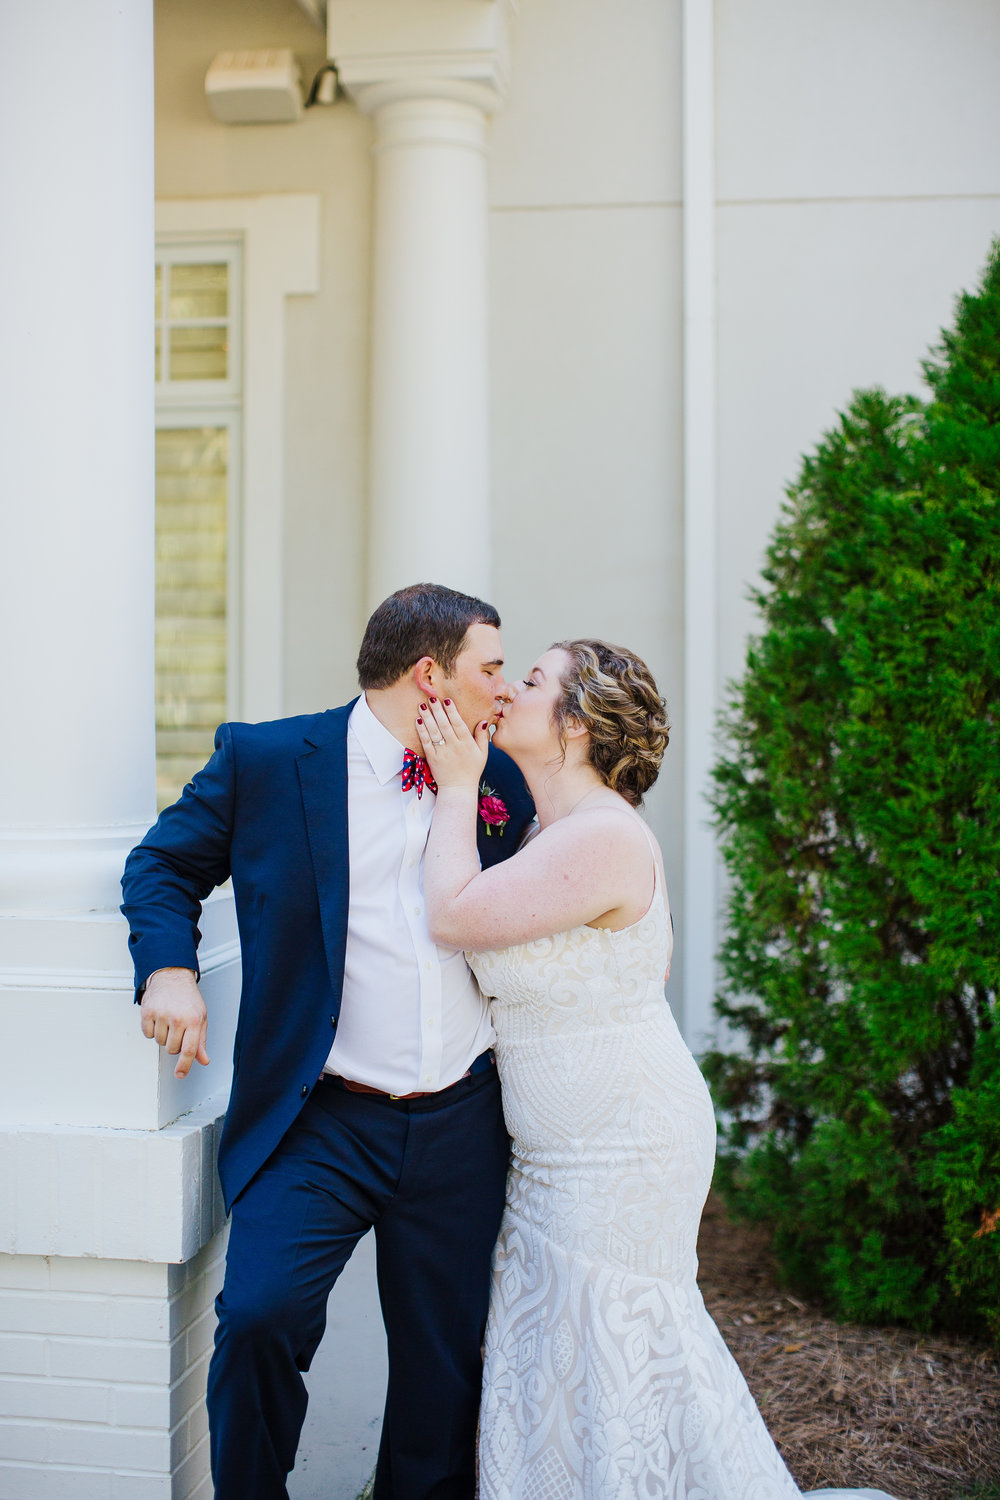 ivory_and_beau_savannah_bridal_shop_ivory_and_beau_bride_mary_kate_west_by_blush_by_hayley_paige_izzy_hudgins_photography_Savannah_wedding_dress_19.jpg